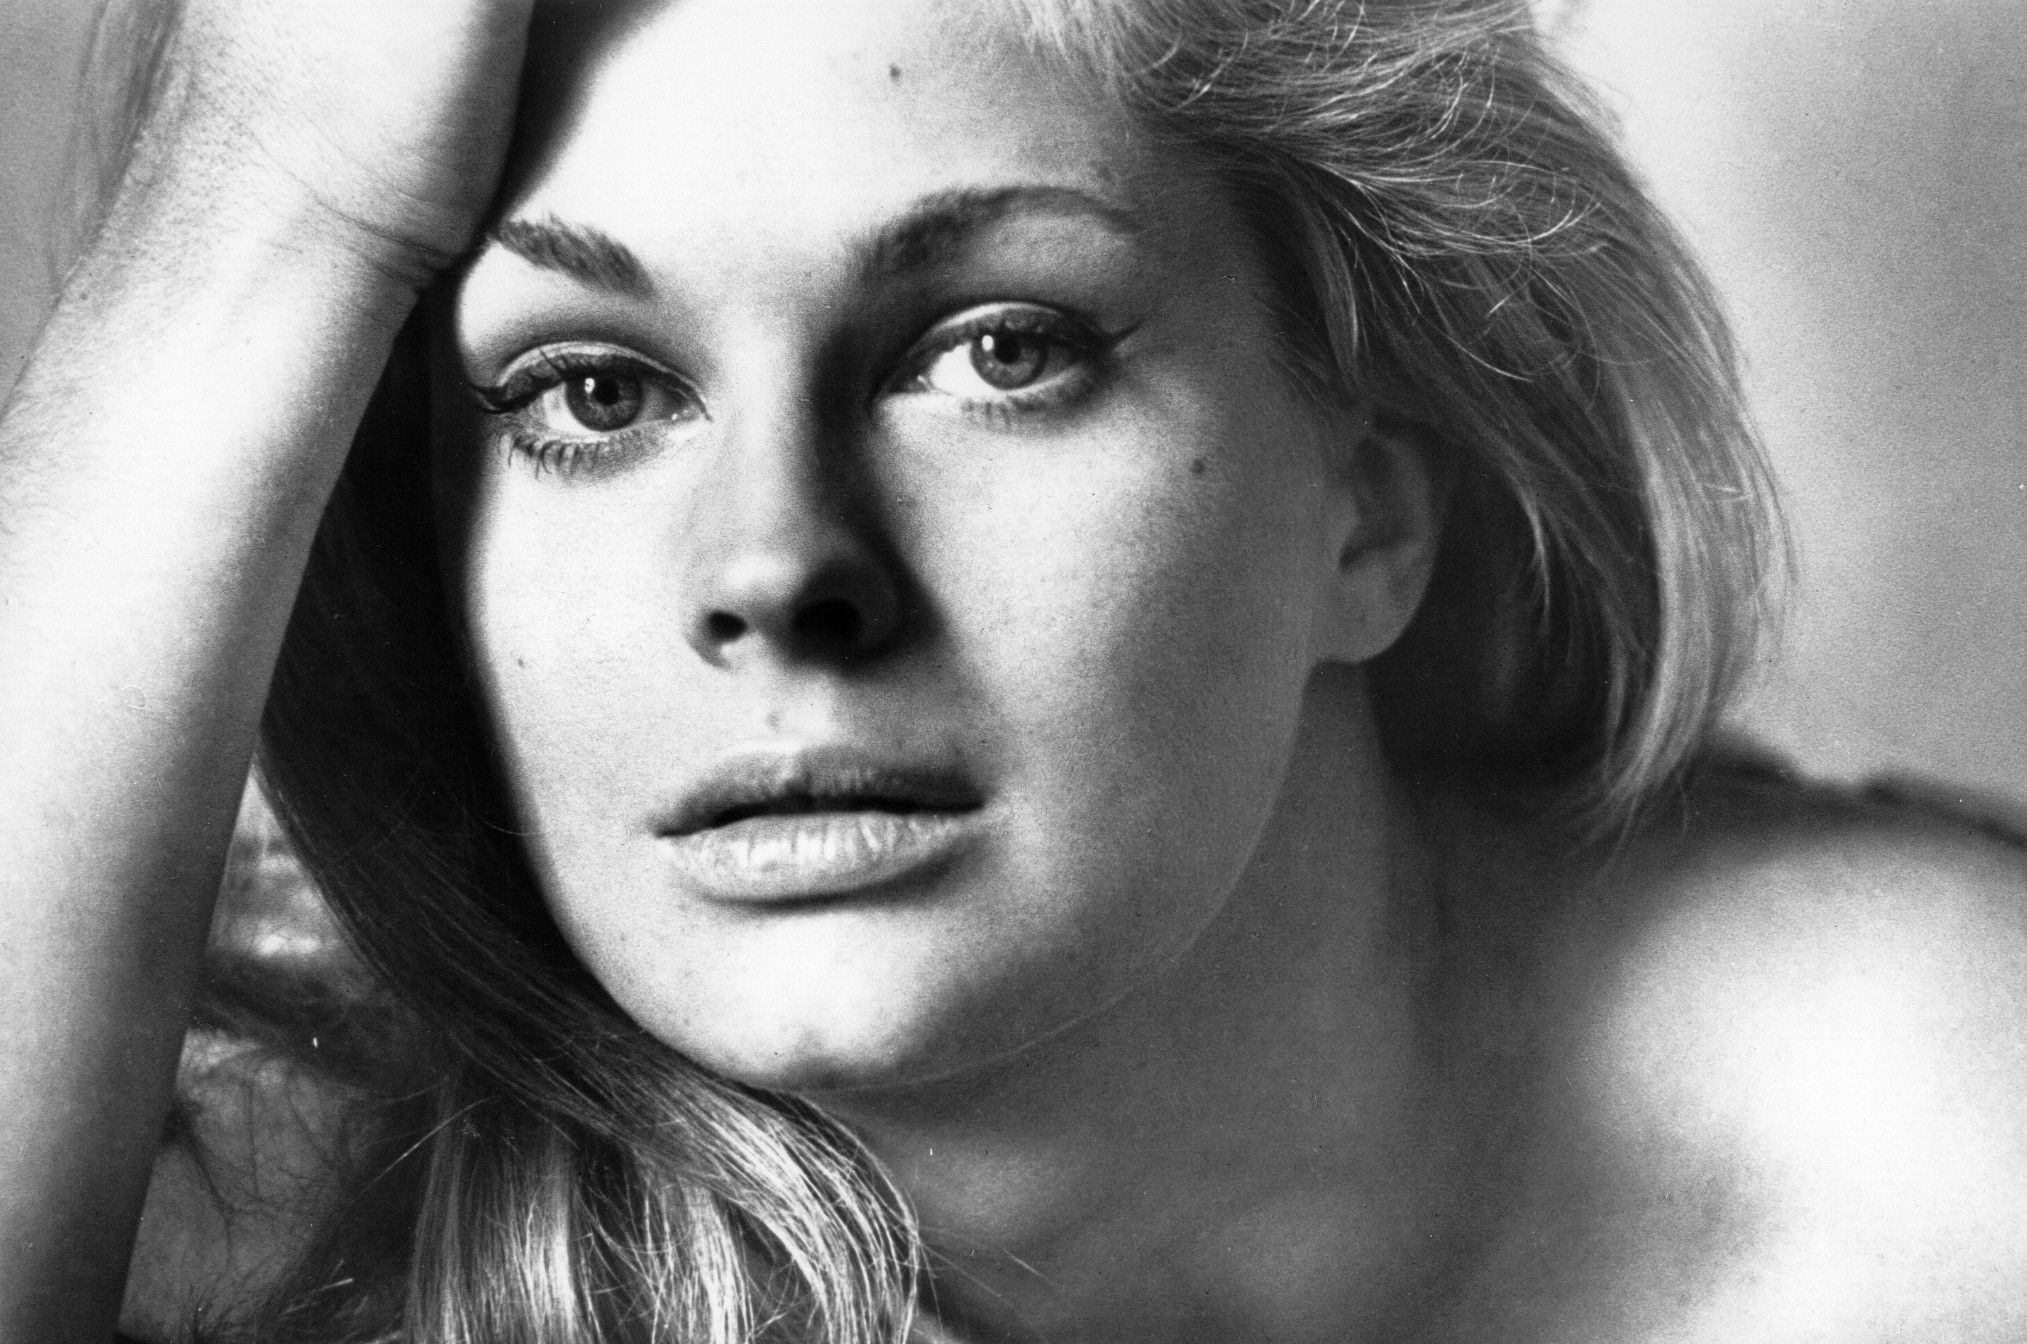 candice bergen young